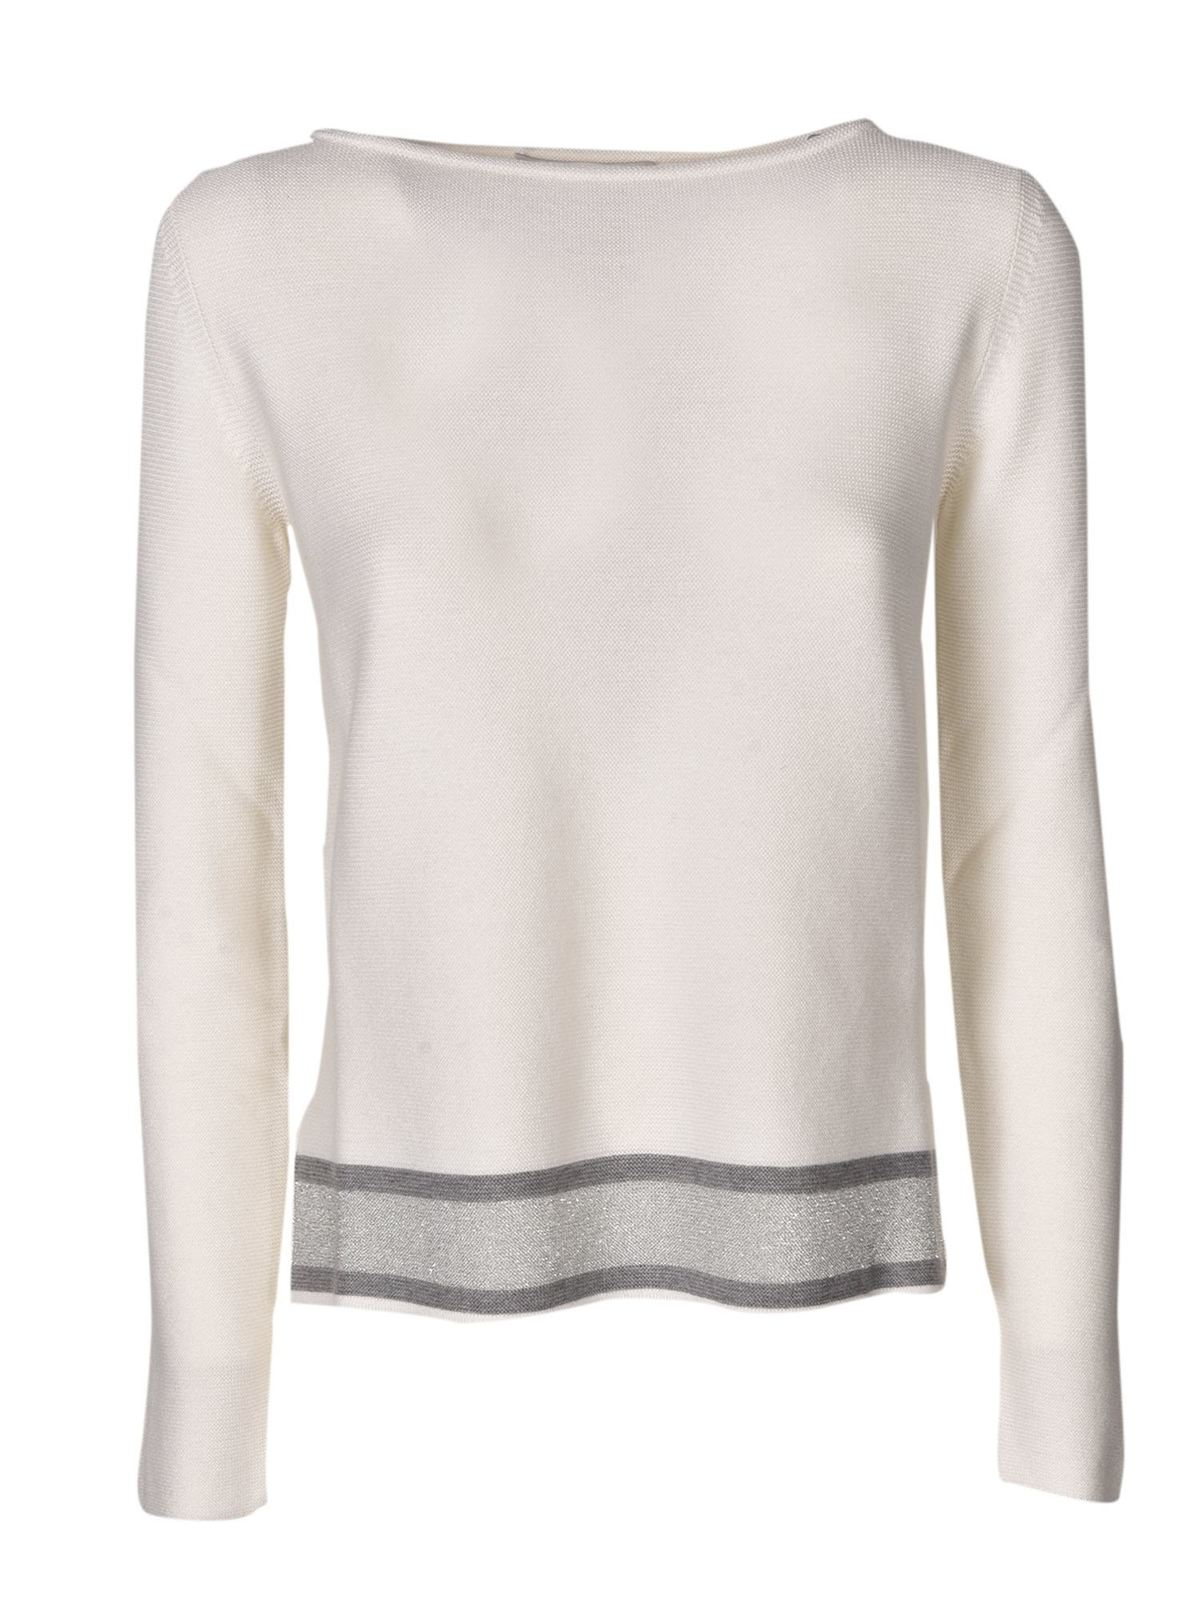 Fabiana Filippi BOAT NECKLINE SWEATER IN WHITE